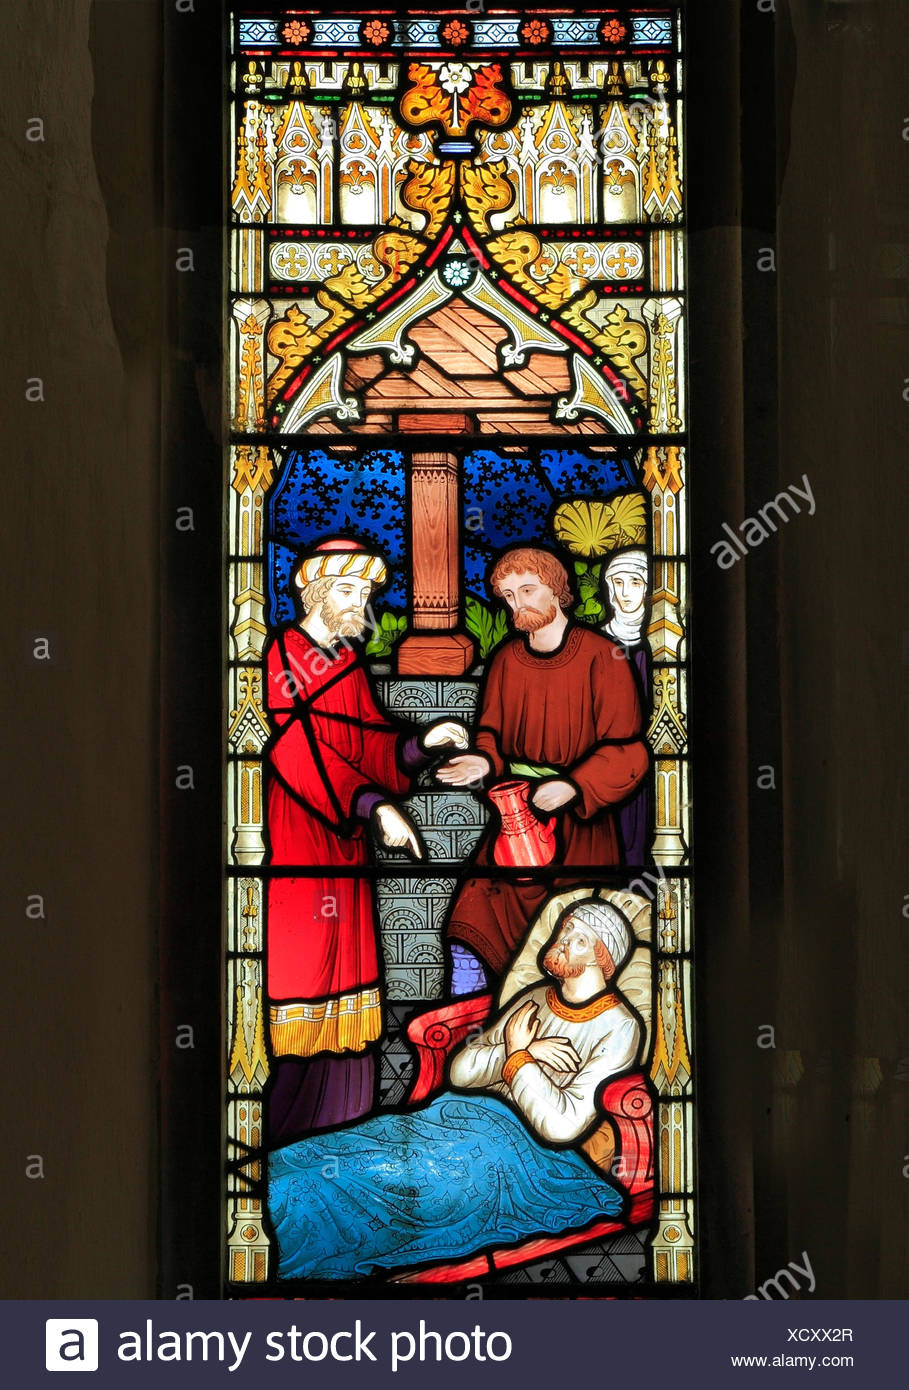 Parable of The Good Samaritan, stained glass by Frederick Preedy, 1865, Samaritan pays Innkeeper to care for the Traveller, Gunthorpe, Norfolk - Stock Image